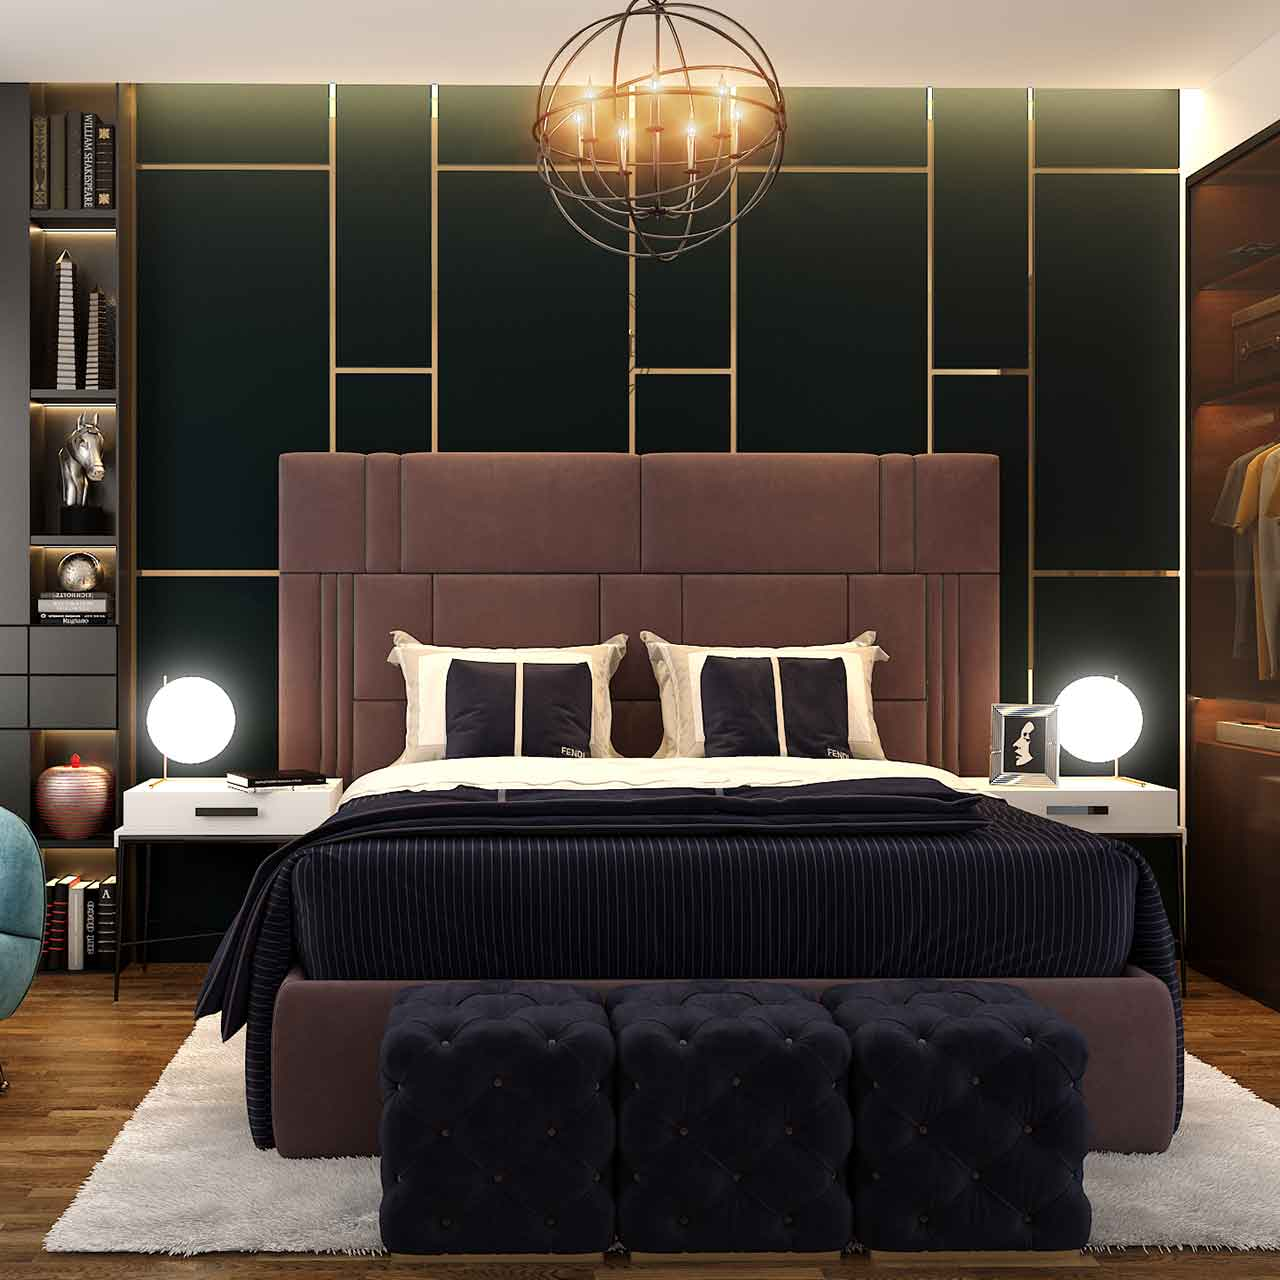 Eclectic style bedroom design finding the right balance is crucial for eclectic style bedroom interiors